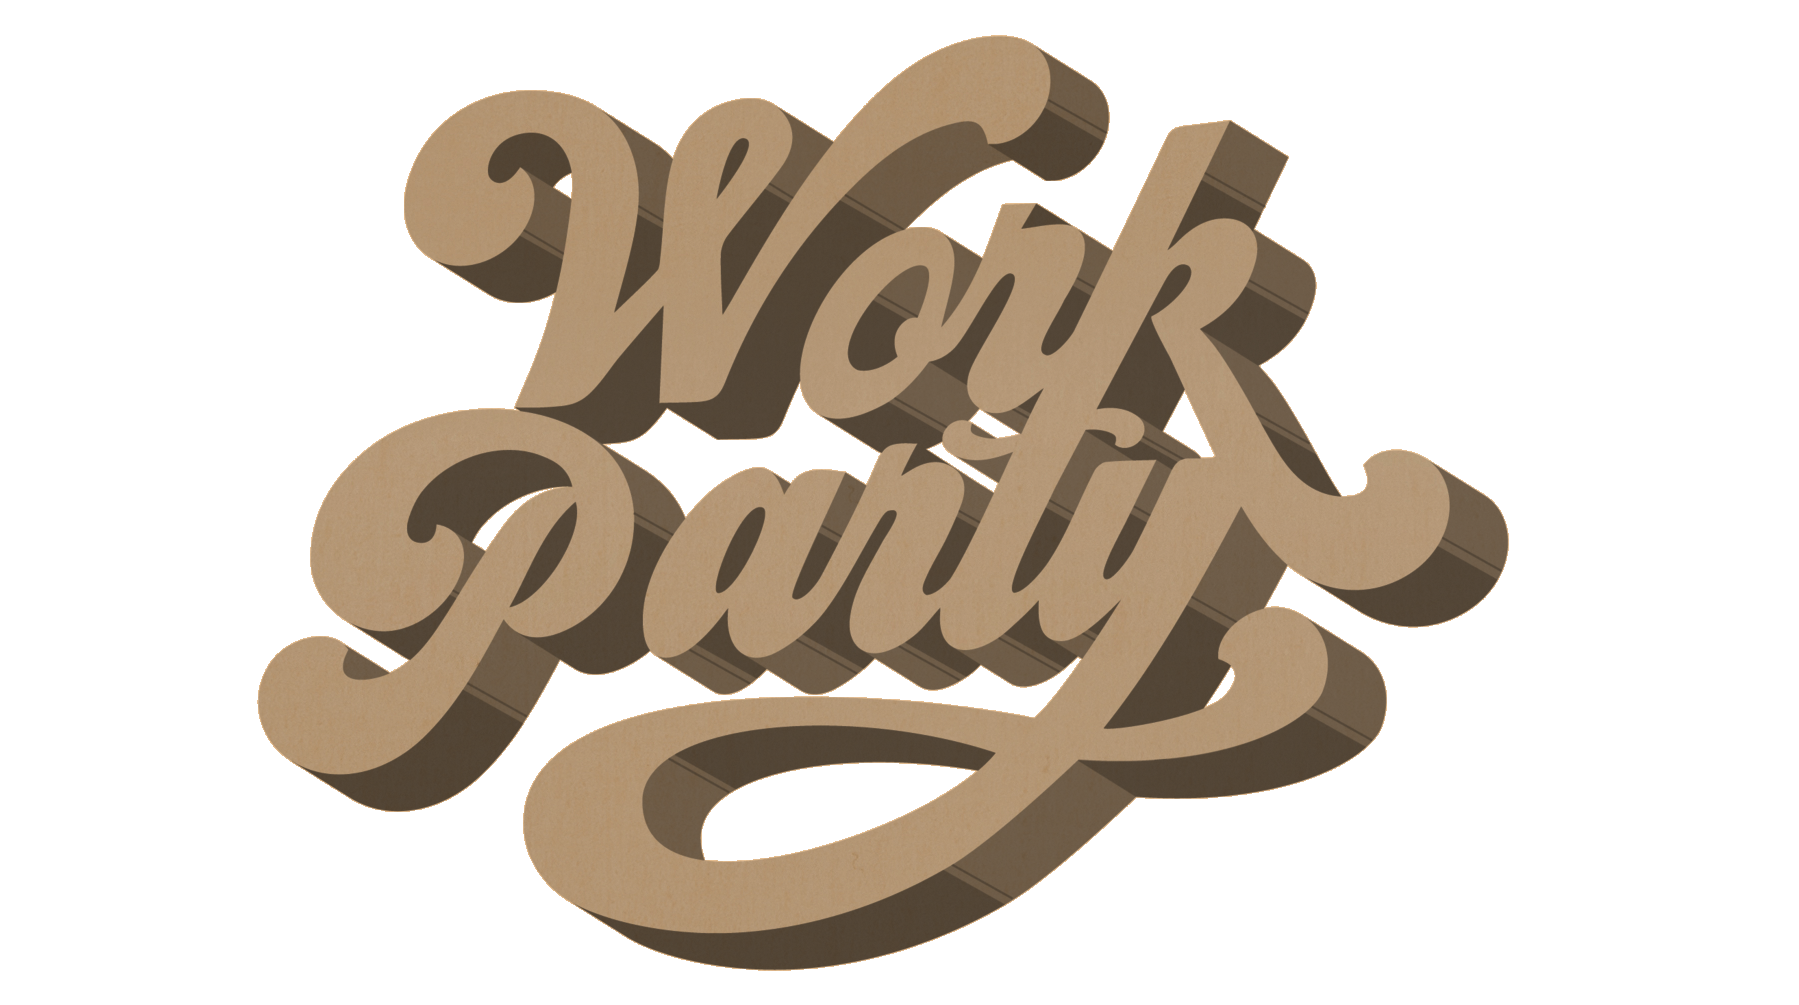 WorkParty-orange-1.png